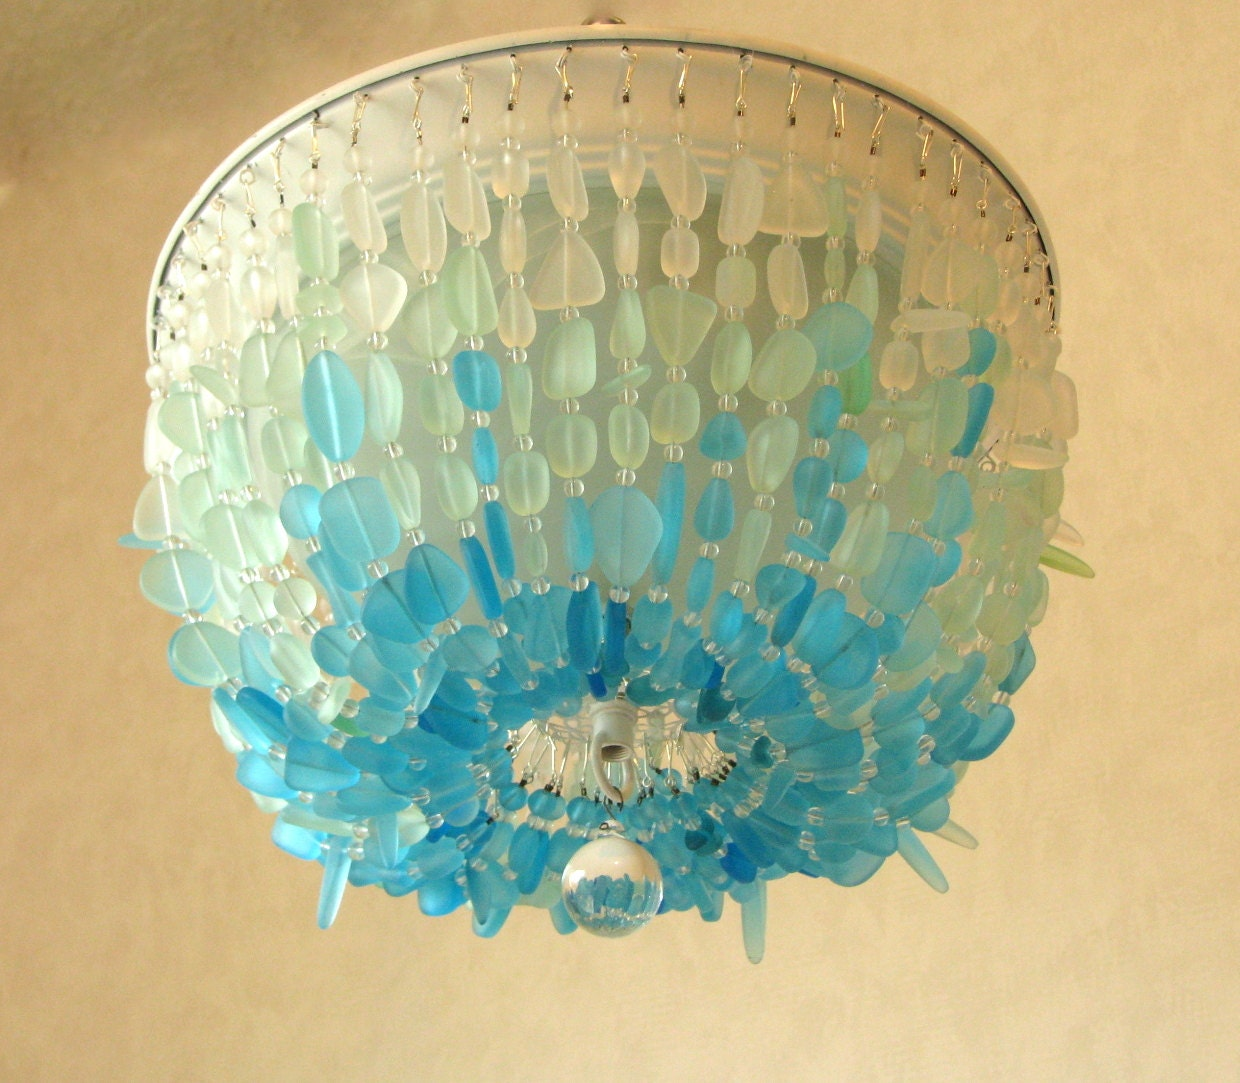 coastal style bath lighting. Coastal Style Bath Lighting. 🔎zoom Lighting S H